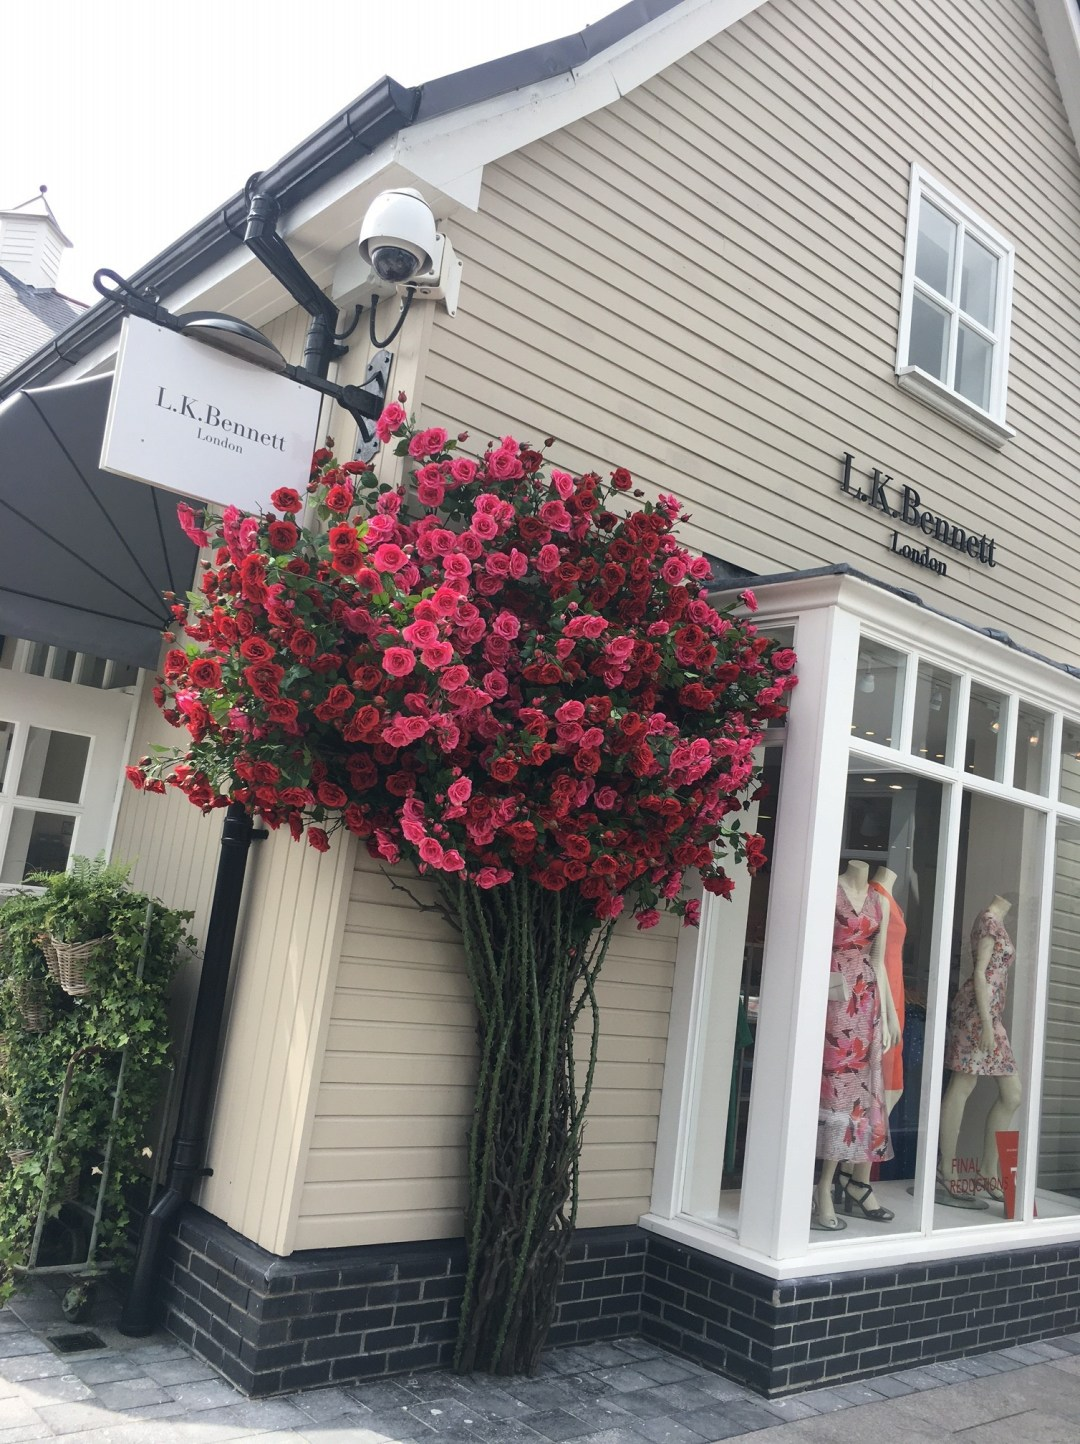 kildare village